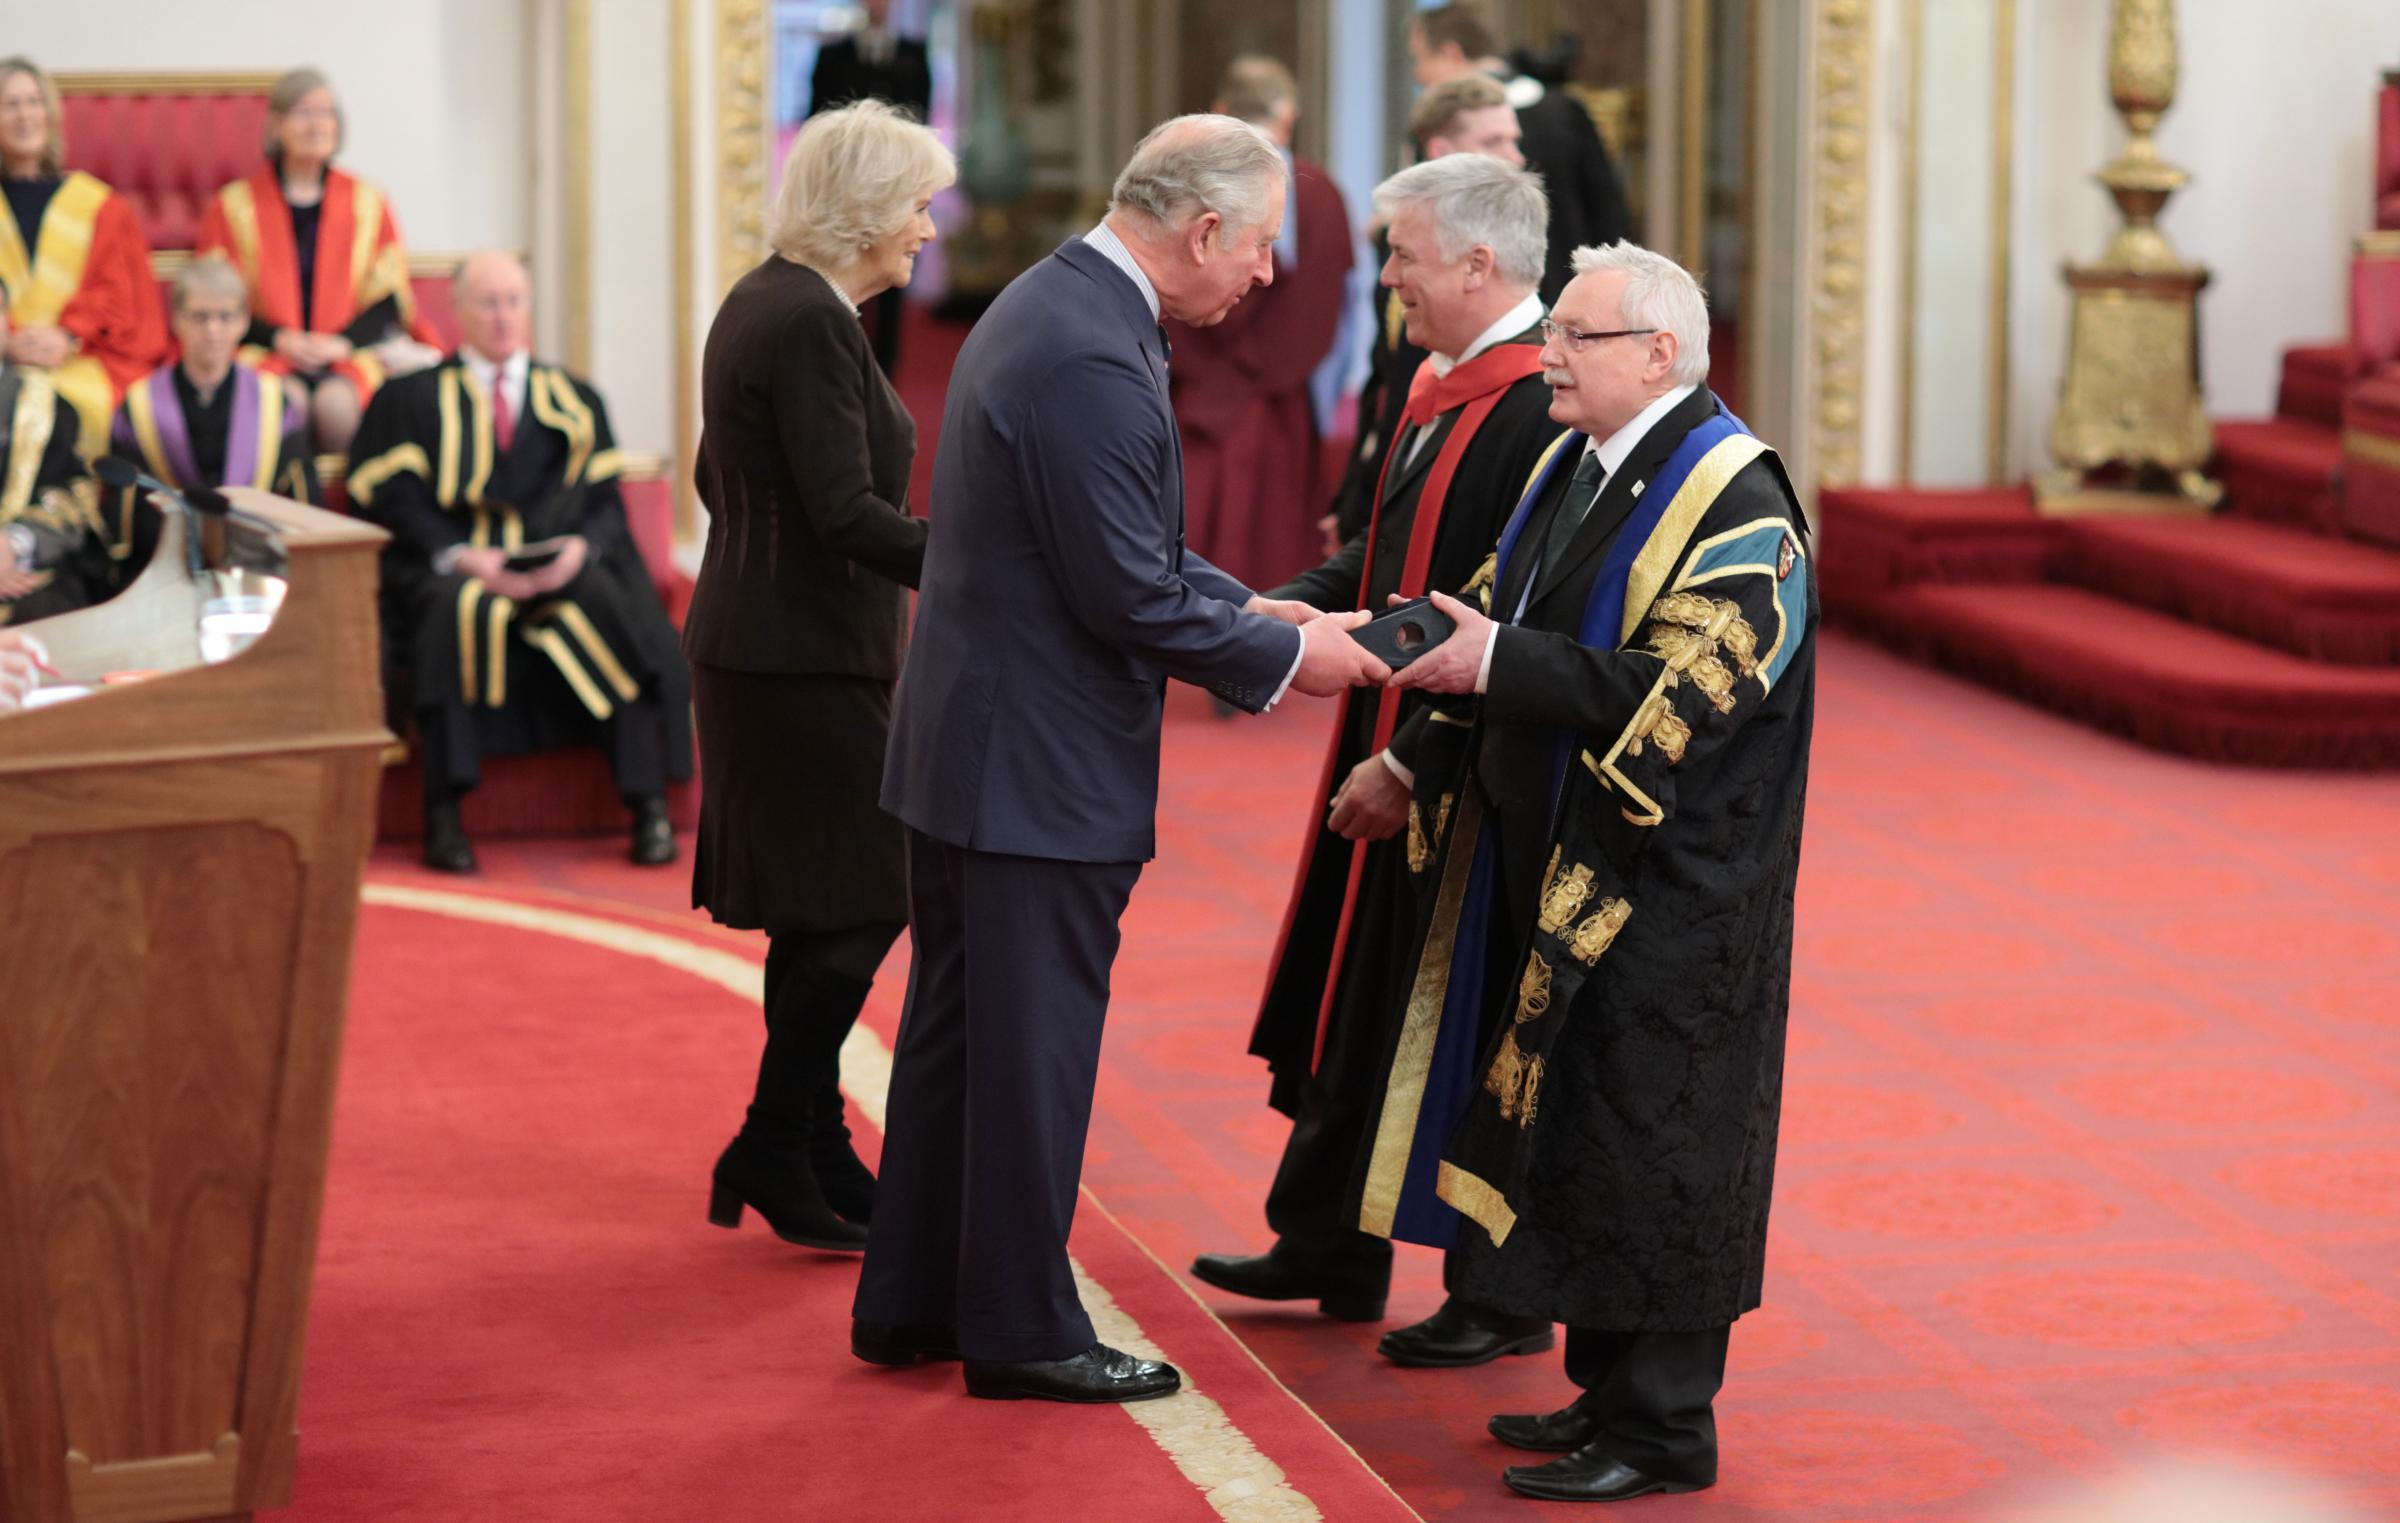 PRINCE CHARLES presents the principal and chief executive of Scotland's Rural College, Wayne Powell, with the SRUC's Queen's Anniversary Prize, while SRUC Professor Mike Coffey collects the scroll from Camilla, Duchess of Cornwall, at Buckingham P